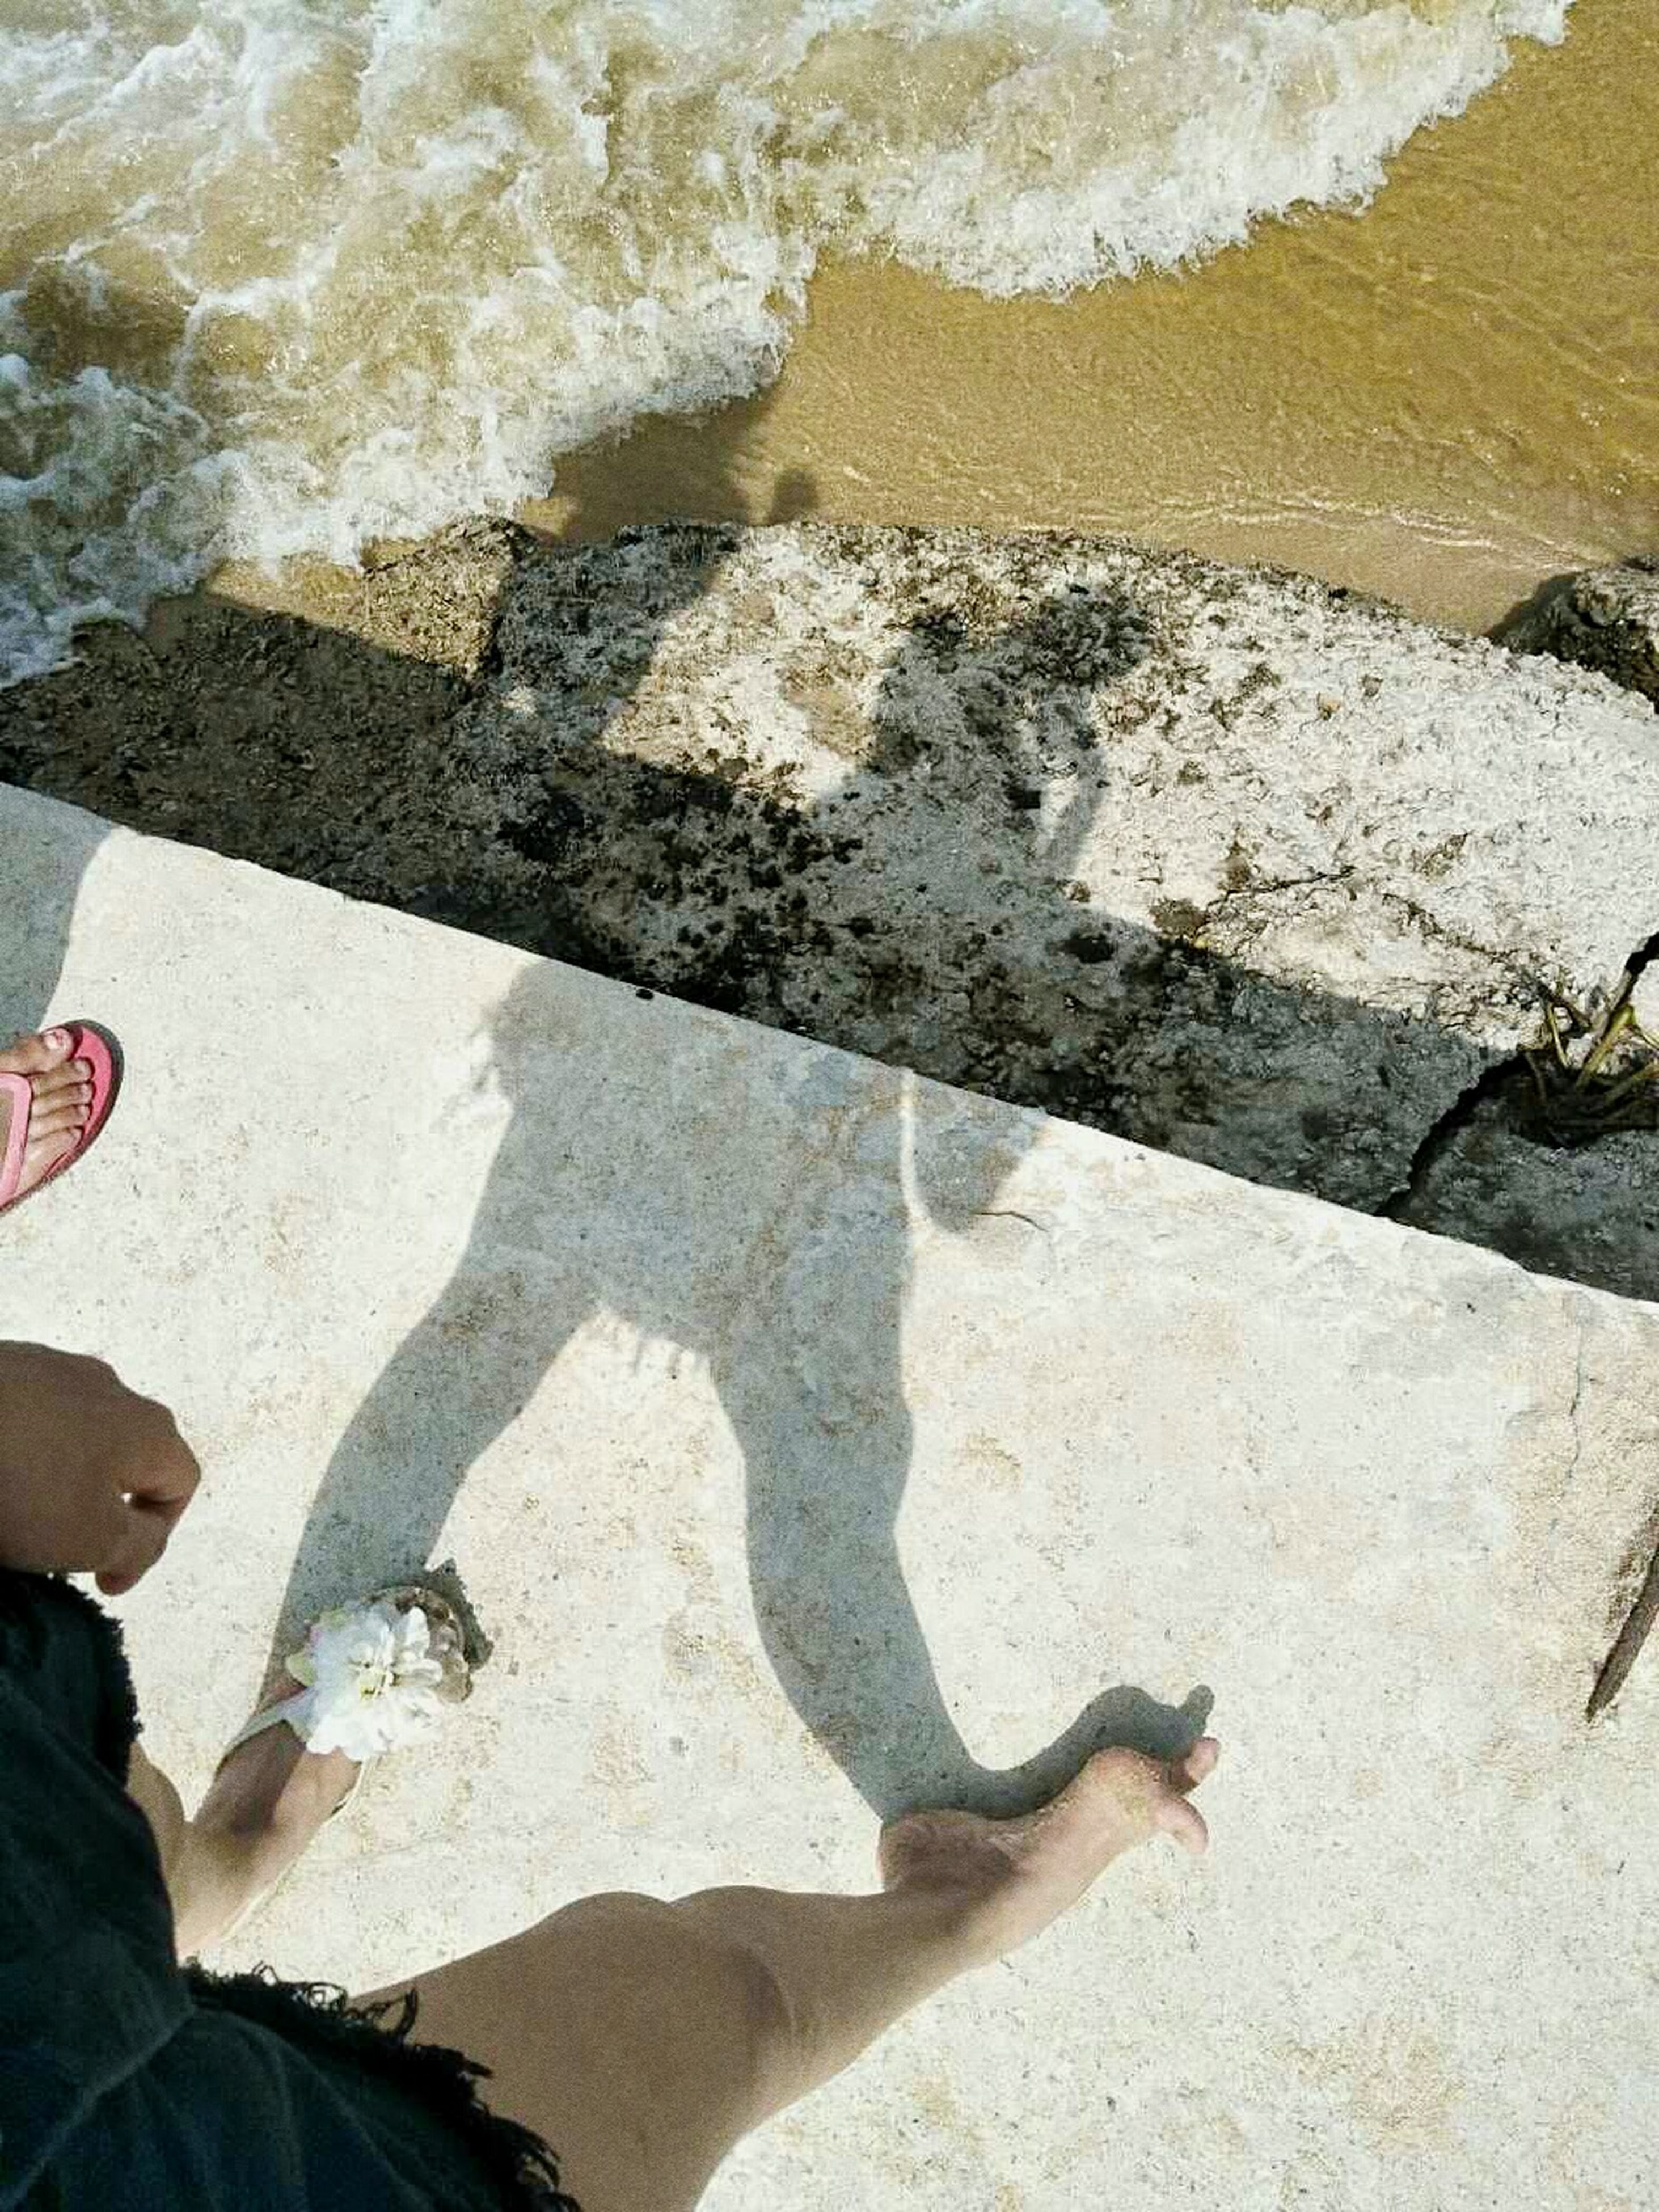 shadow, sunlight, day, real people, high angle view, outdoors, human body part, one person, low section, human hand, water, nature, one man only, only men, people